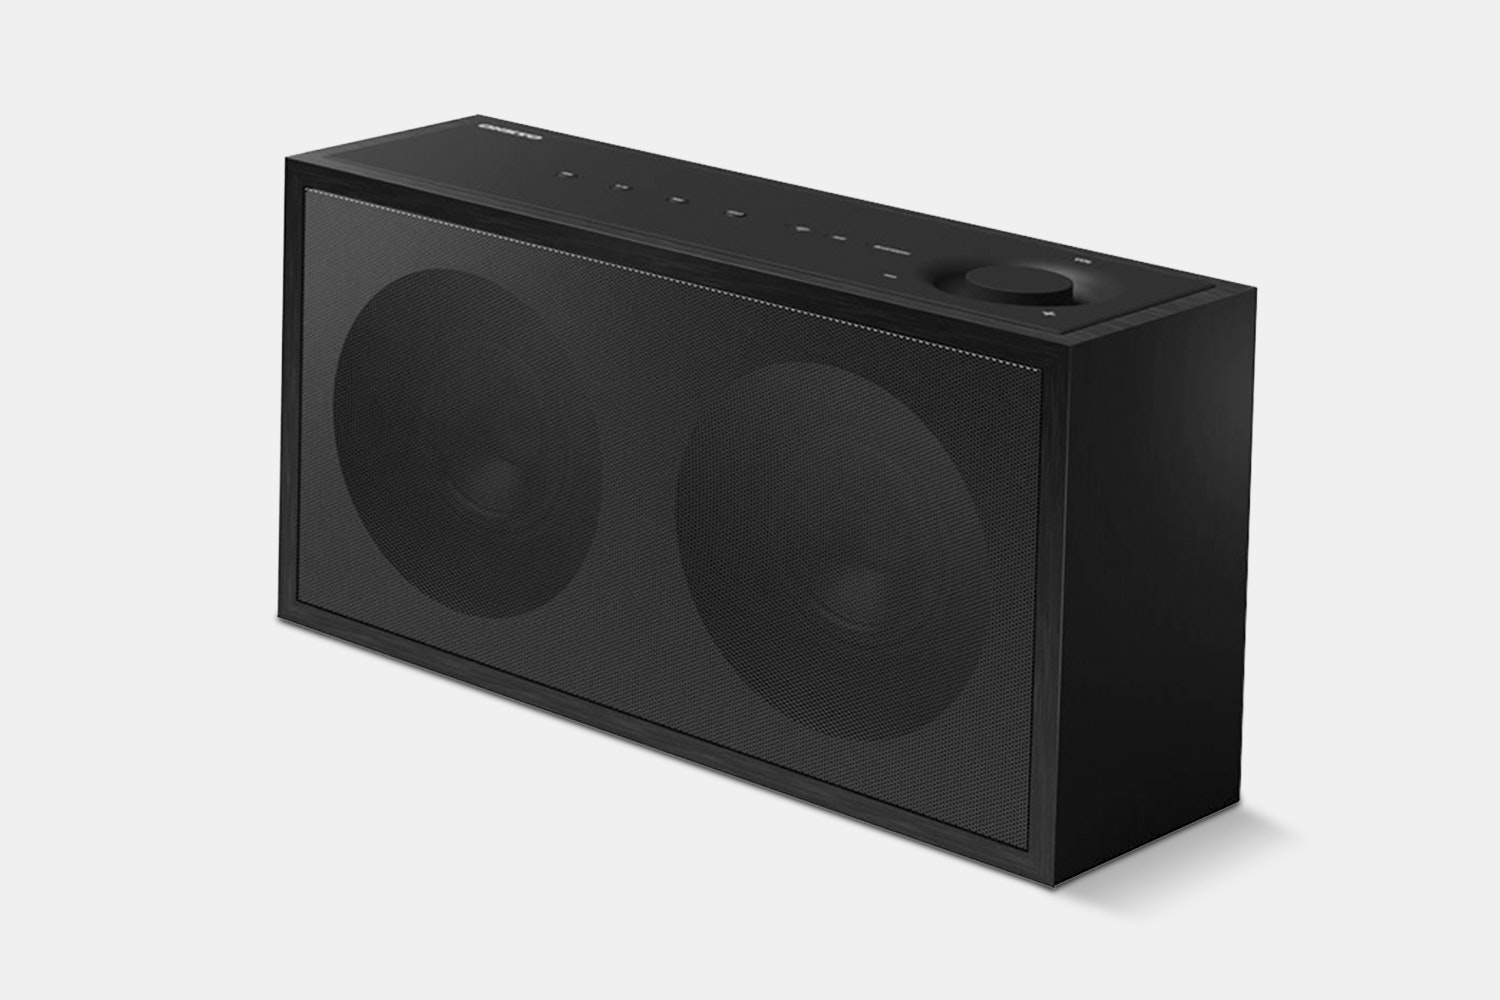 Onkyo NCP-302 Wireless Network Speaker